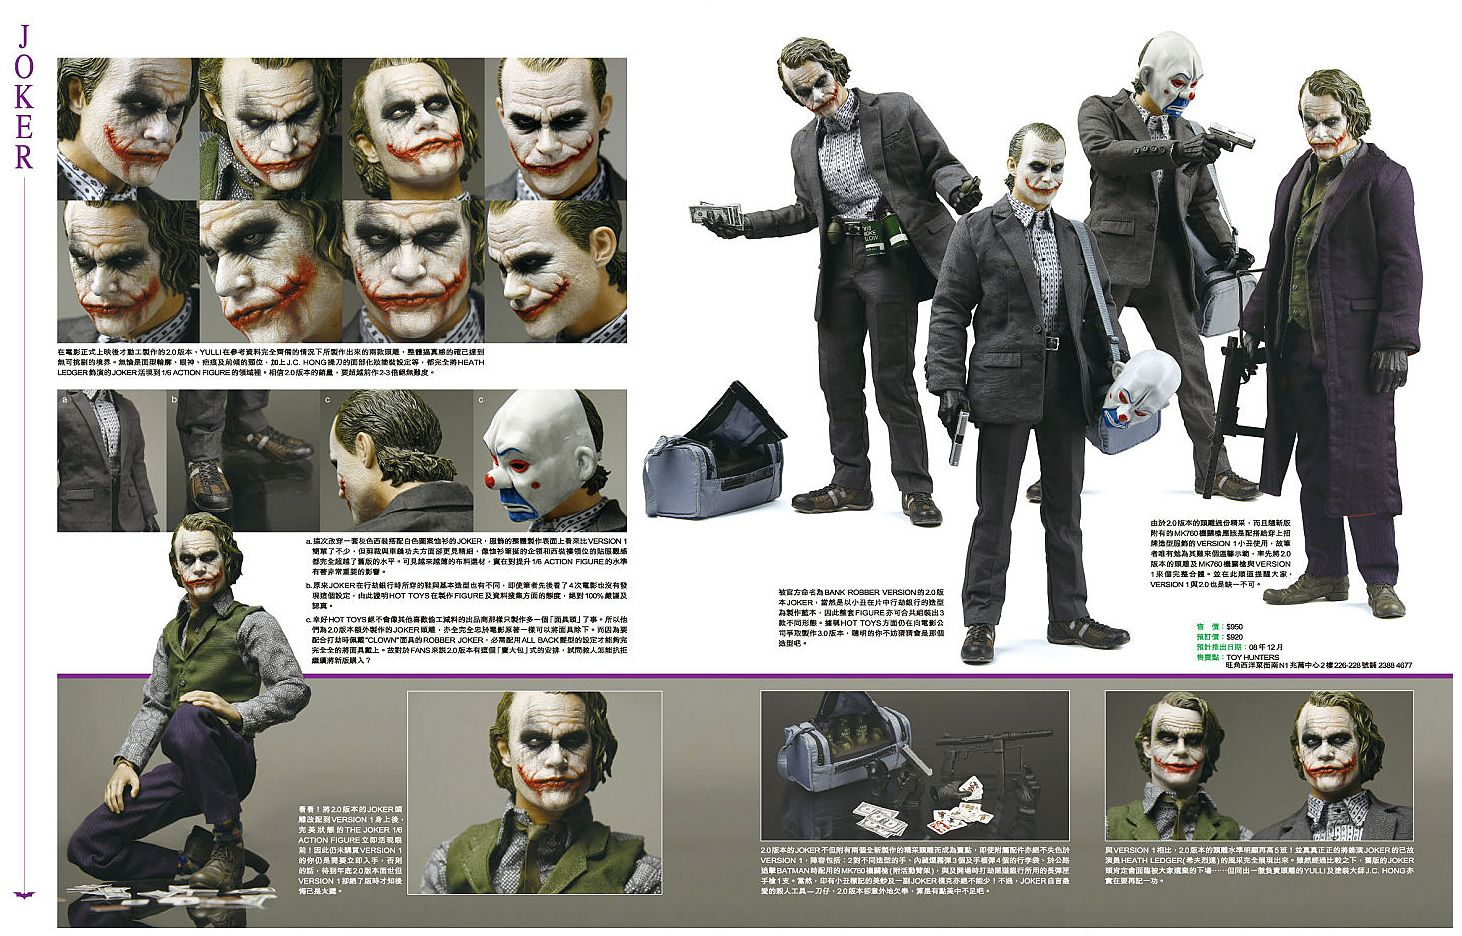 Impresionante Figura del Joker de Heath Ledger. (1)